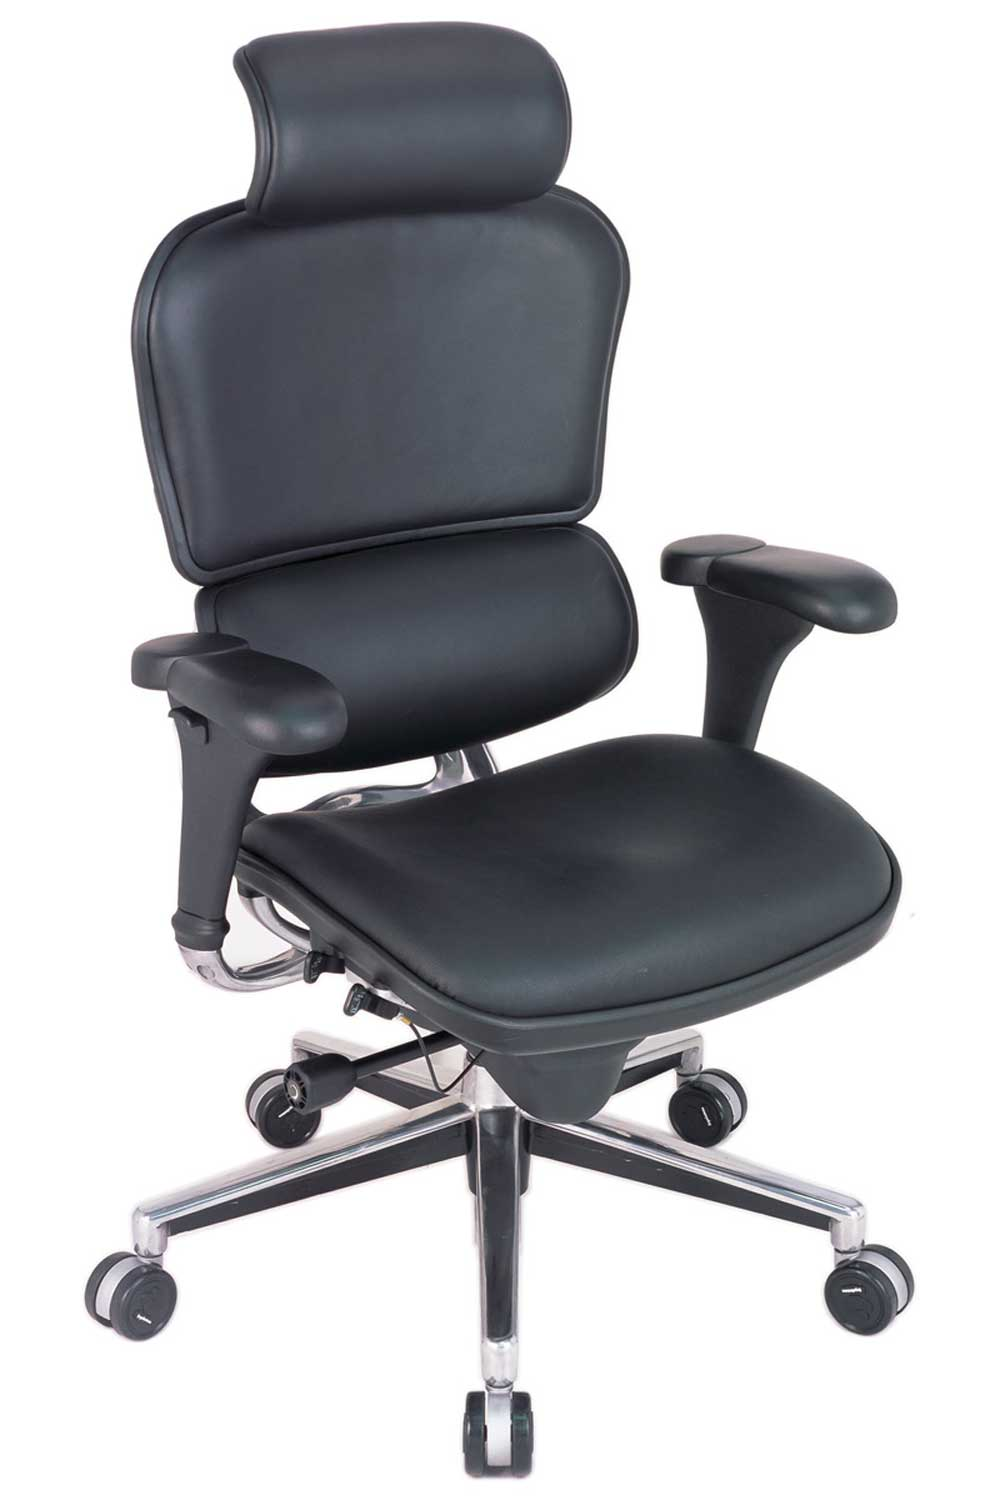 fice Chairs Best fice Chairs For Back Support